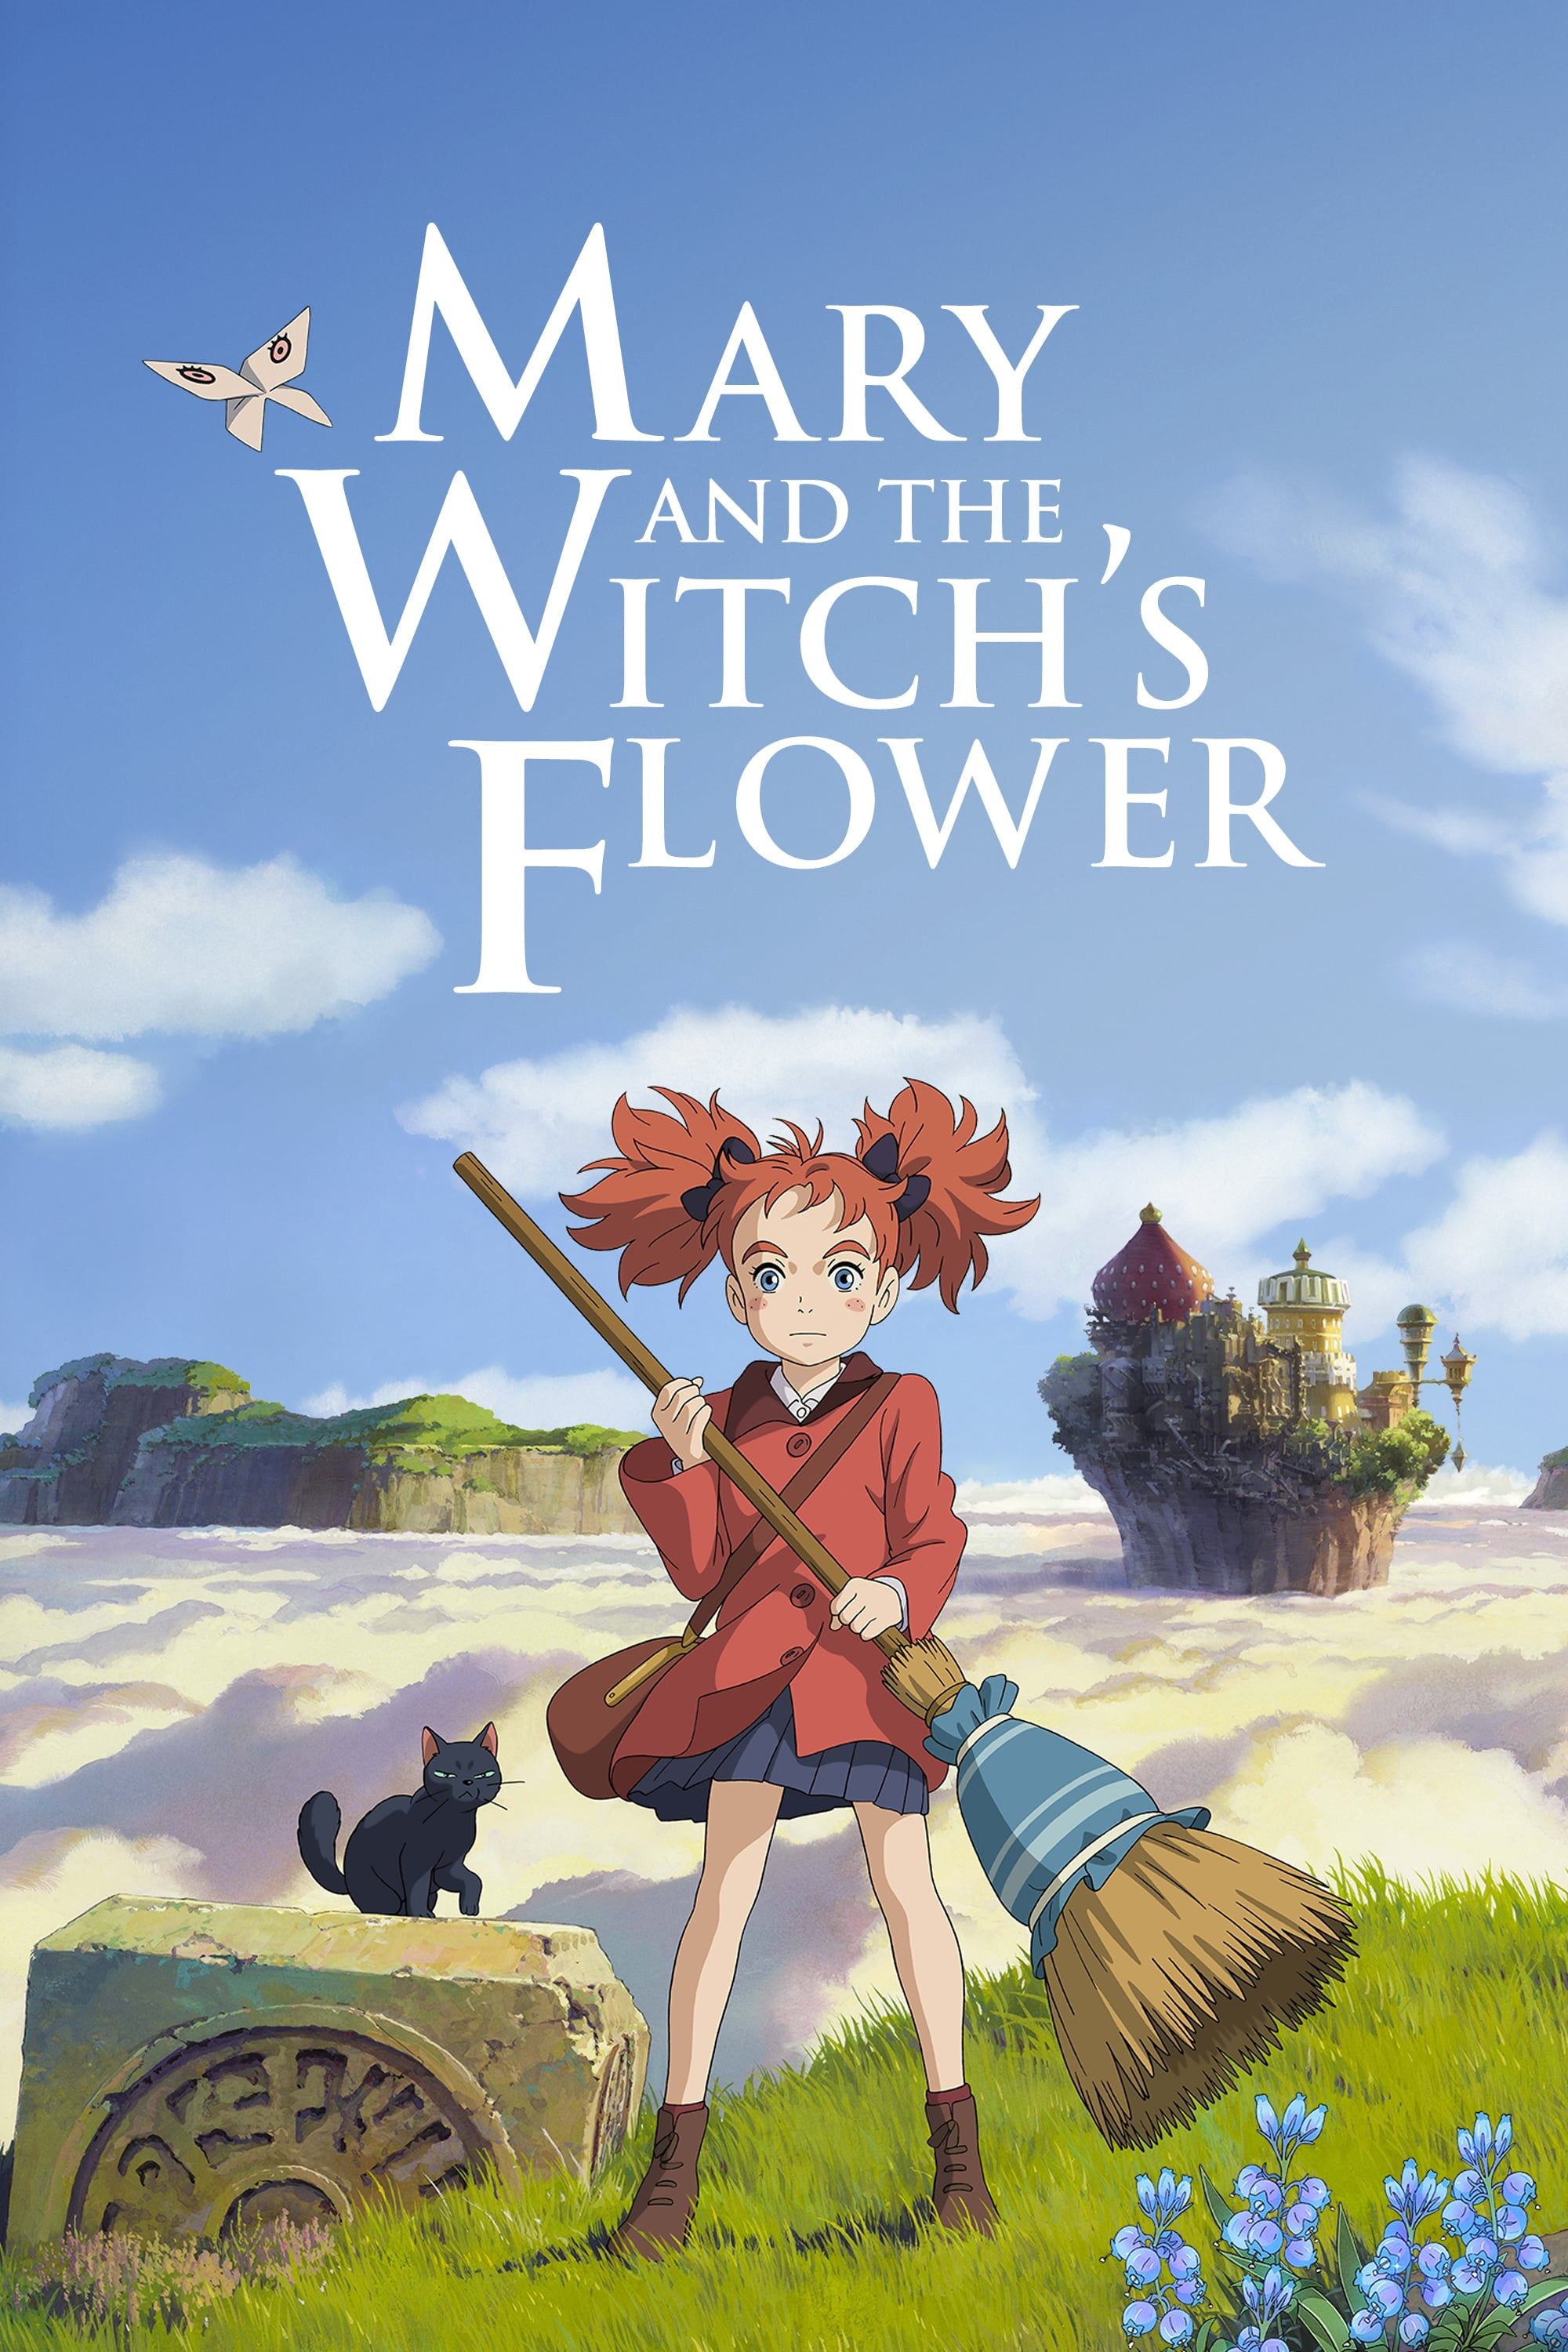 .Mary and the Witch's Flower FULL MOVIE Streaming Online